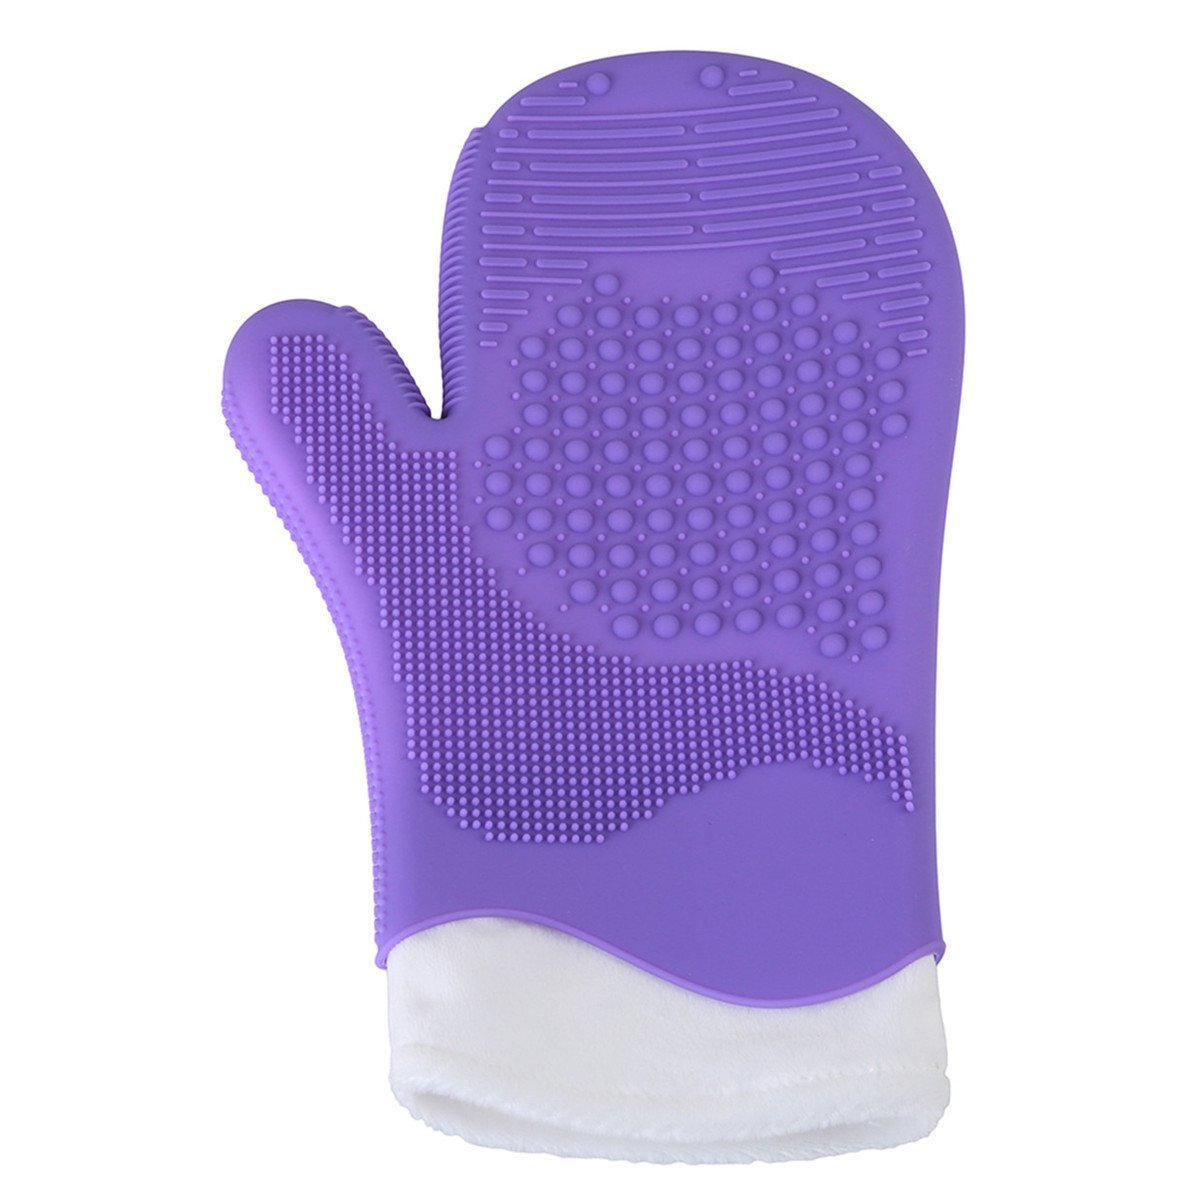 Edtoy Makeup Cosmetic Brush Washing Cleaning Glove Silicone Cleaner Scrubber (Purple)